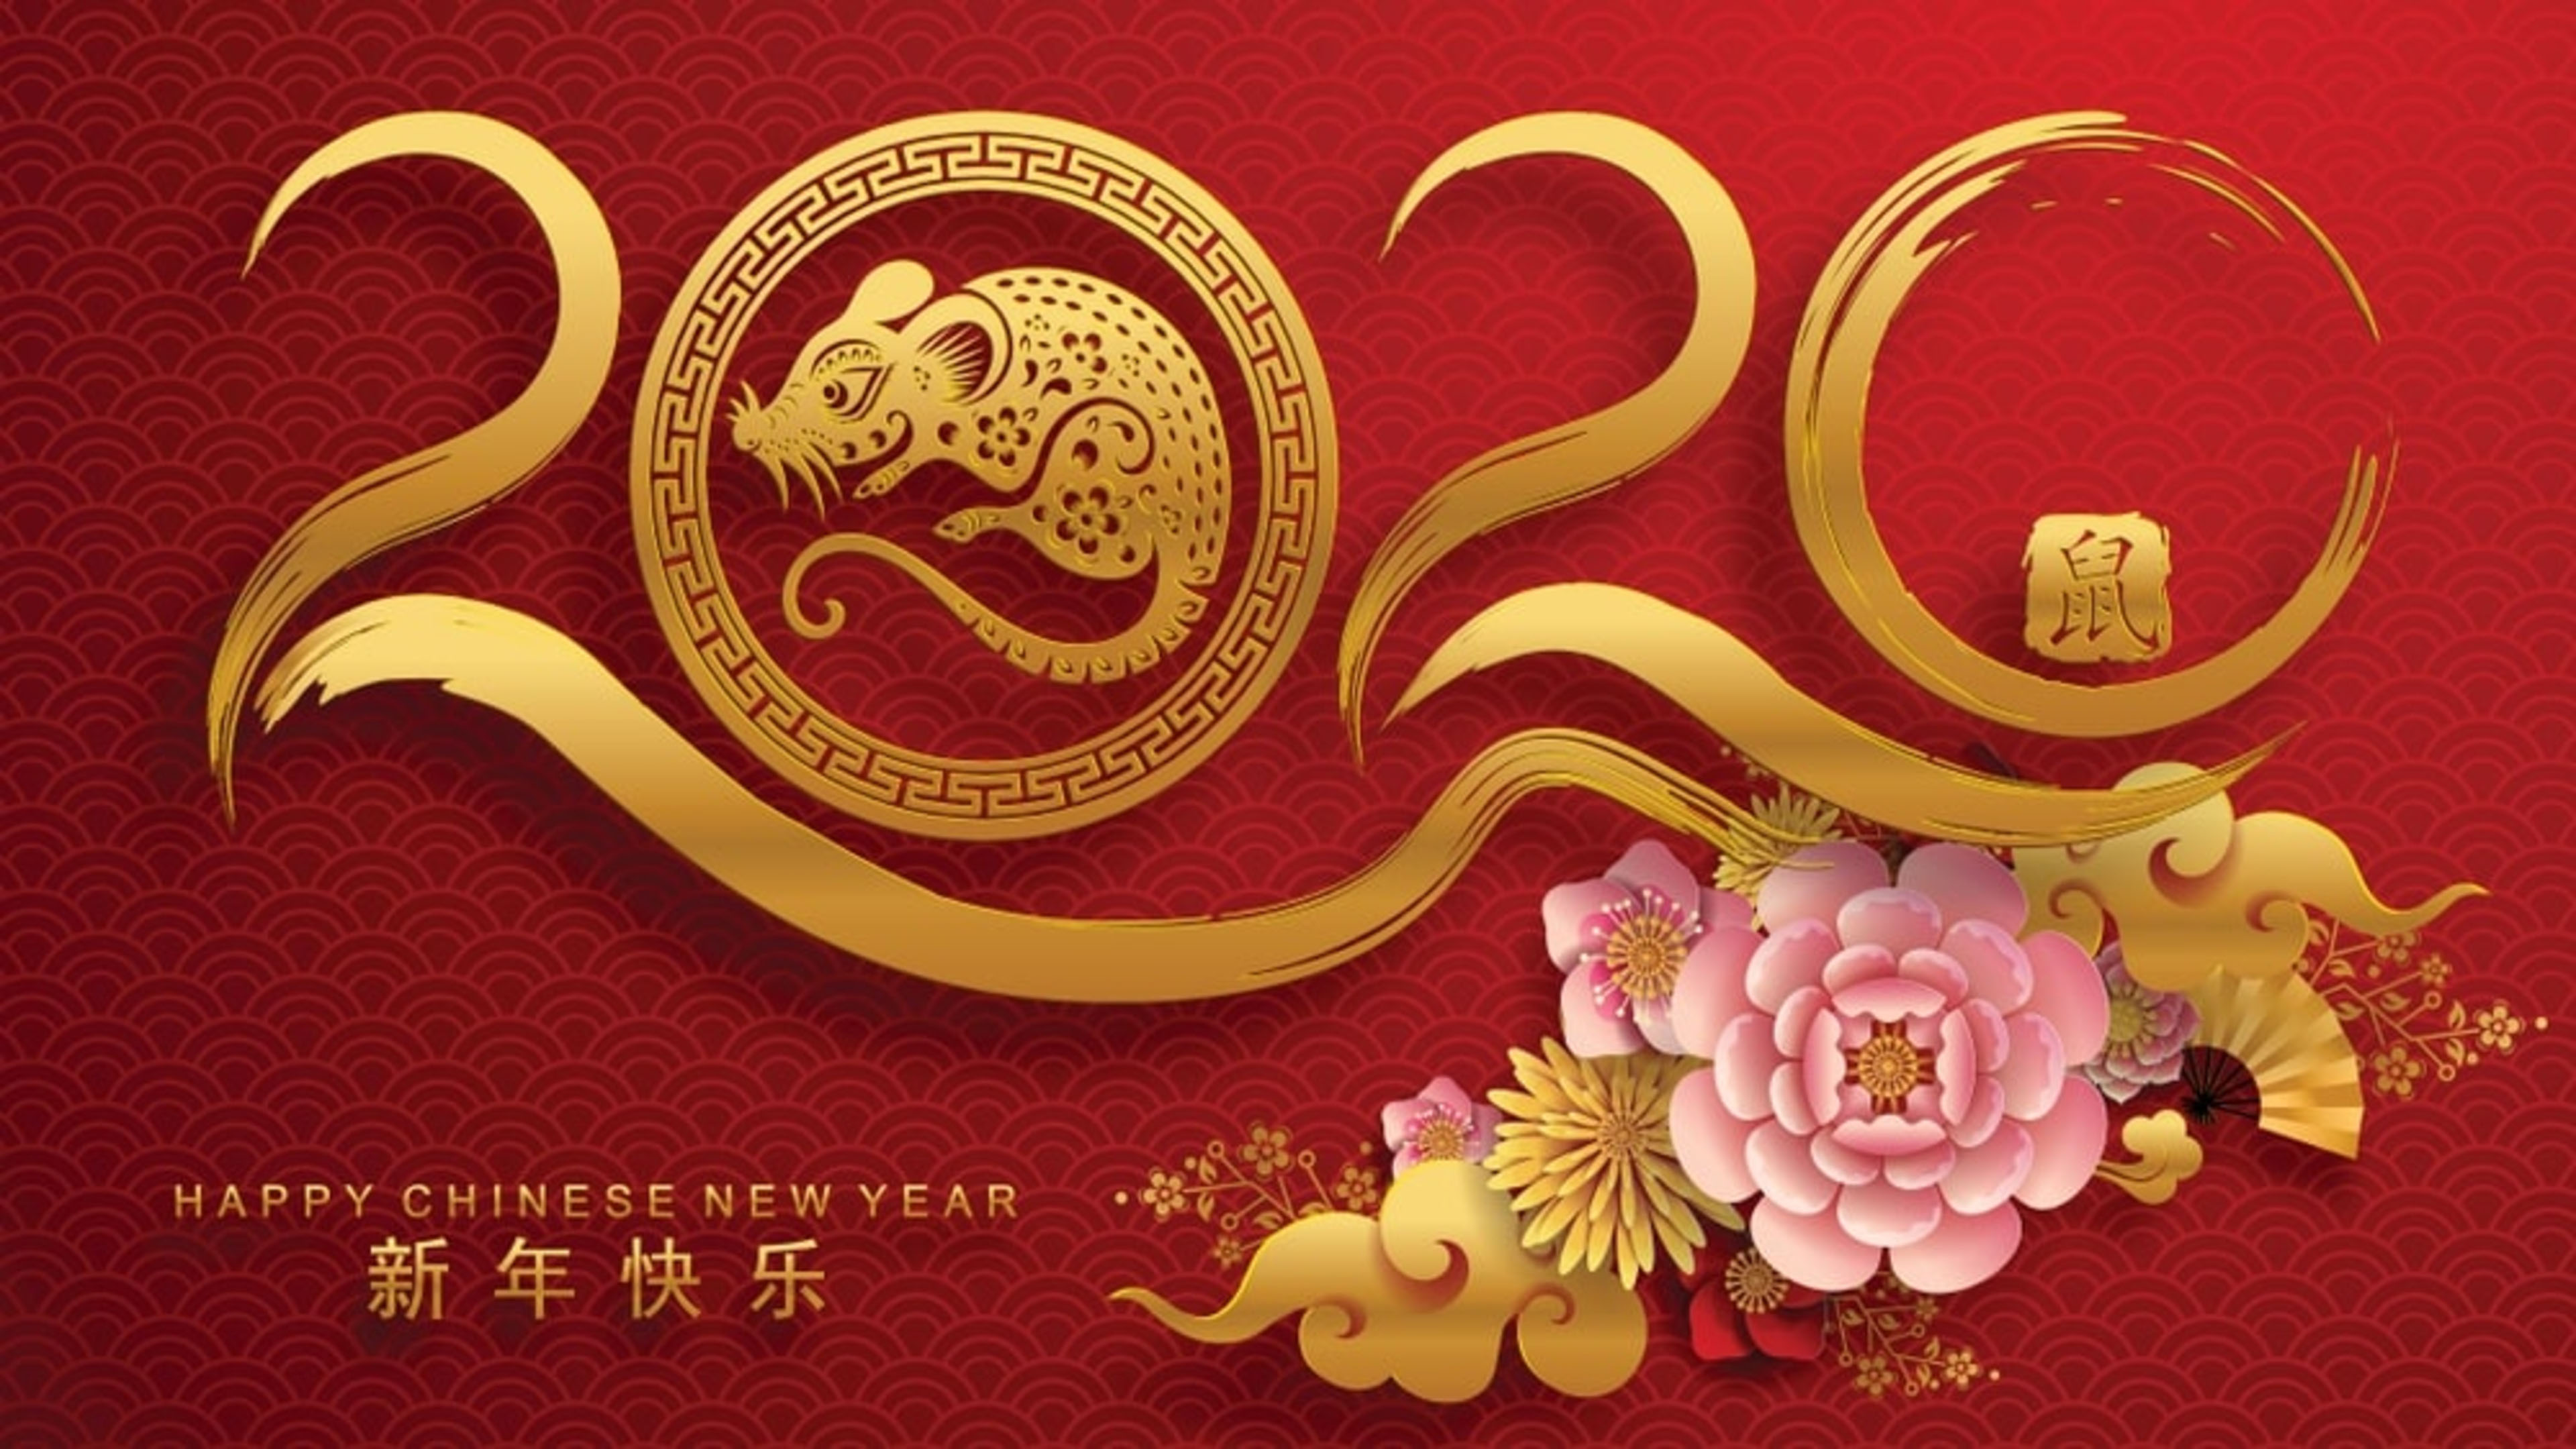 Happy New Year 2020 Zodiac Sign Year Of The Rat Chinese